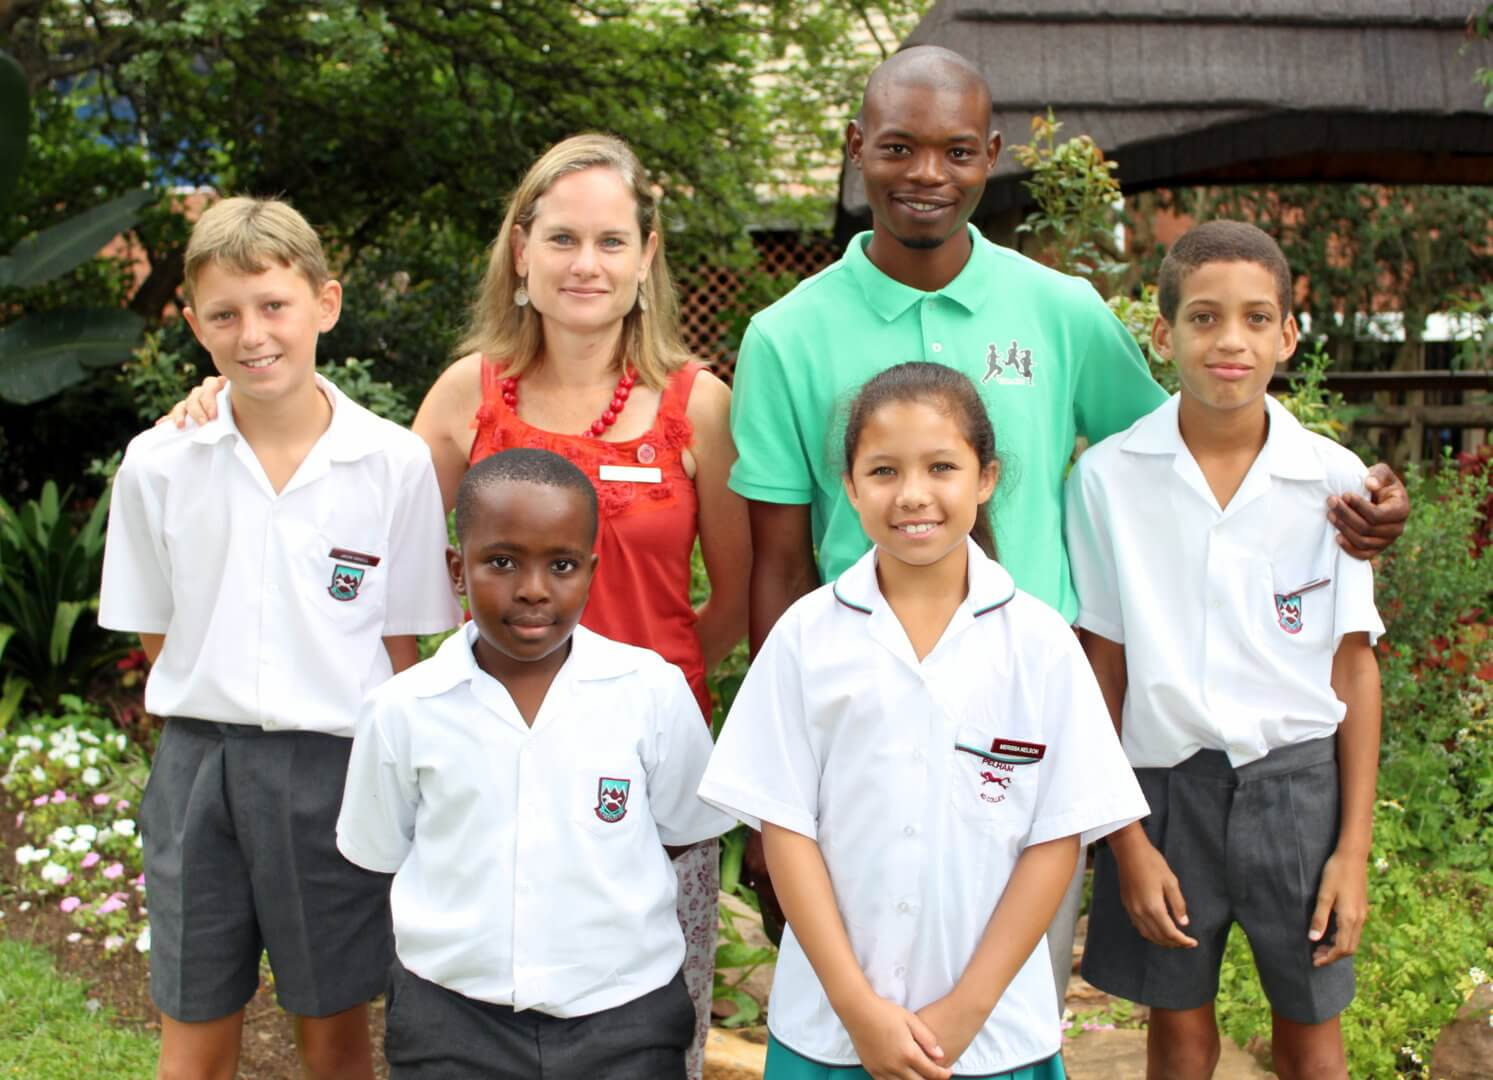 Picture from left to right (back): Jack Odell, Mrs Rebecca Shultz (Trustee Eden Kids), Mr Nhlakanipho Gazu (Director Eden Kids) and Aaron Lewis Left to right (front): Masibonge Shabalala and Merissa Nelson